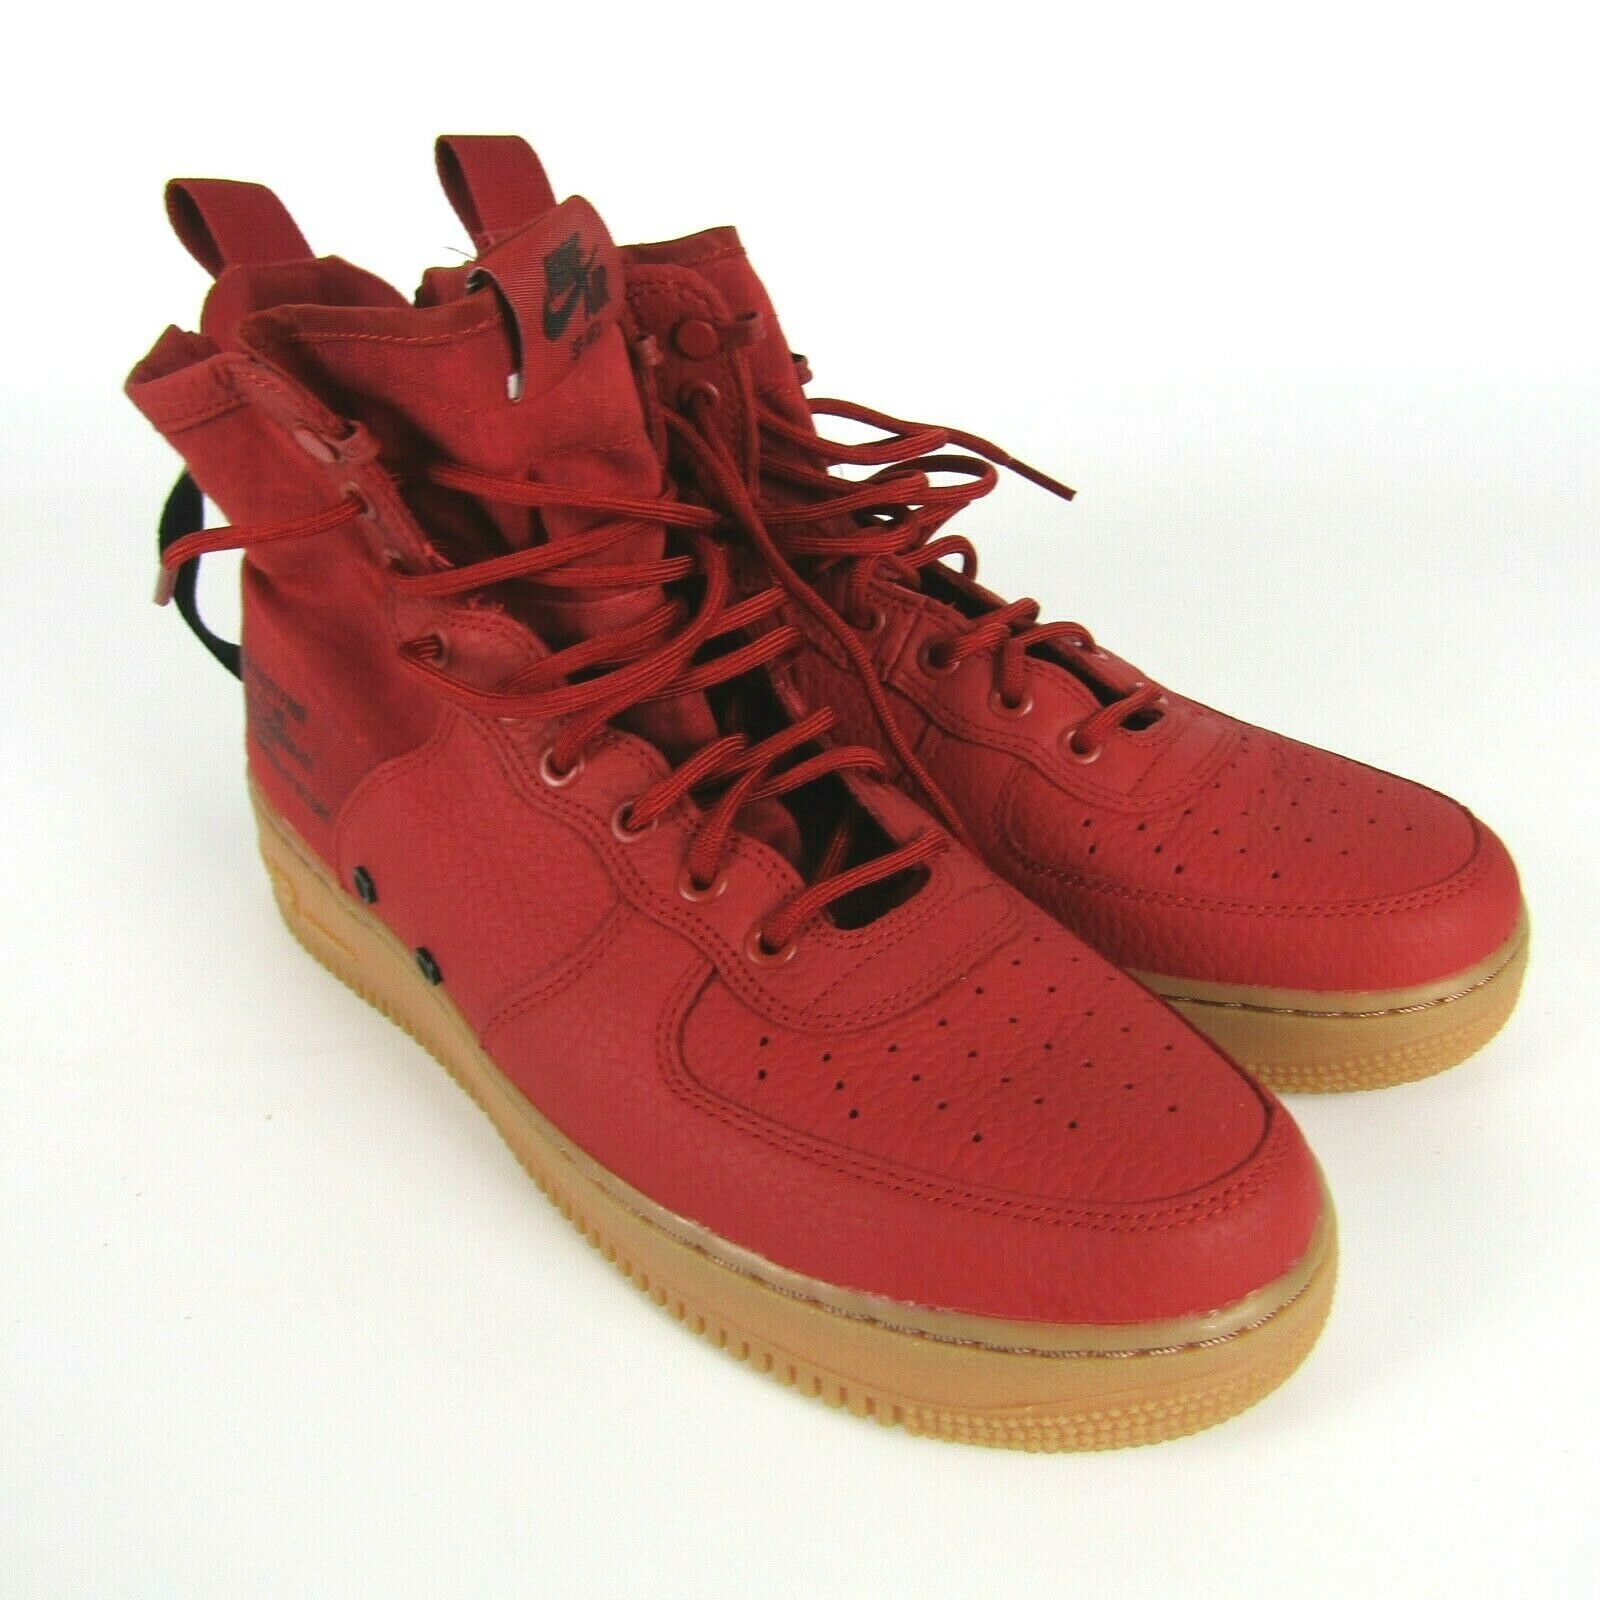 Nike SF AF1 Mid Dune Red Black Shoes Size 11 Men 917753 600 Air Force 1 Sneakers image 2